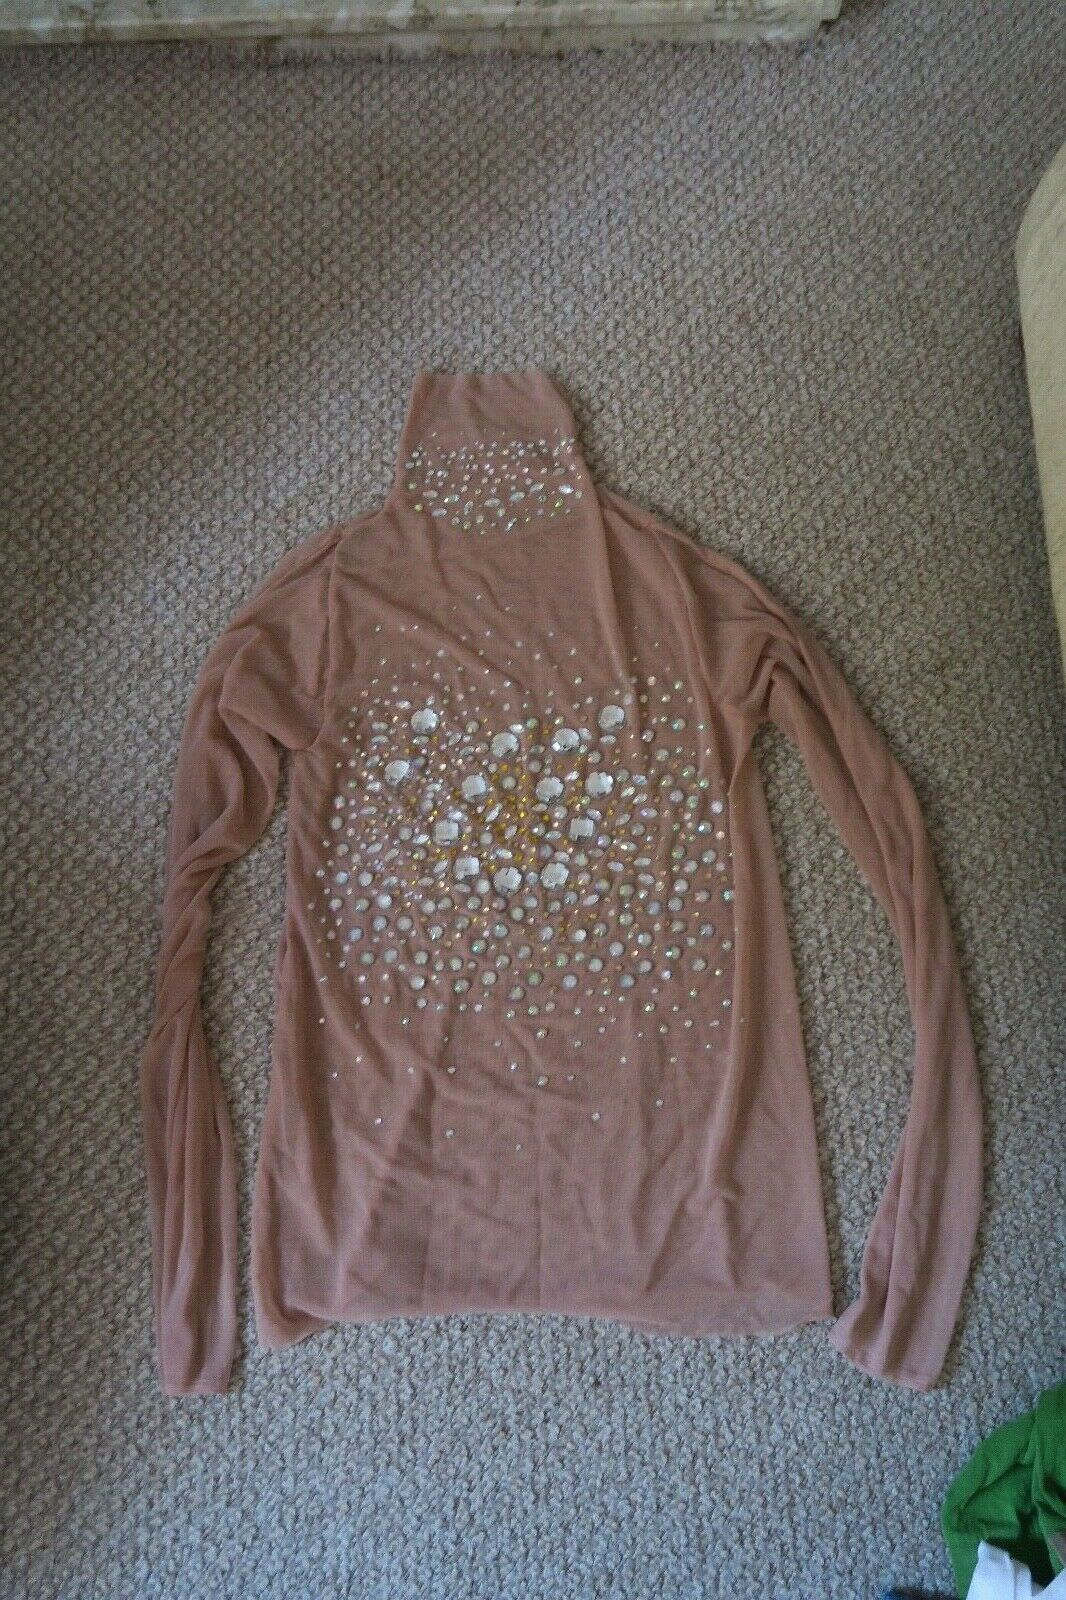 Hand made rhinestone diamante coverot high neck nude sheer mesh top Größe 12